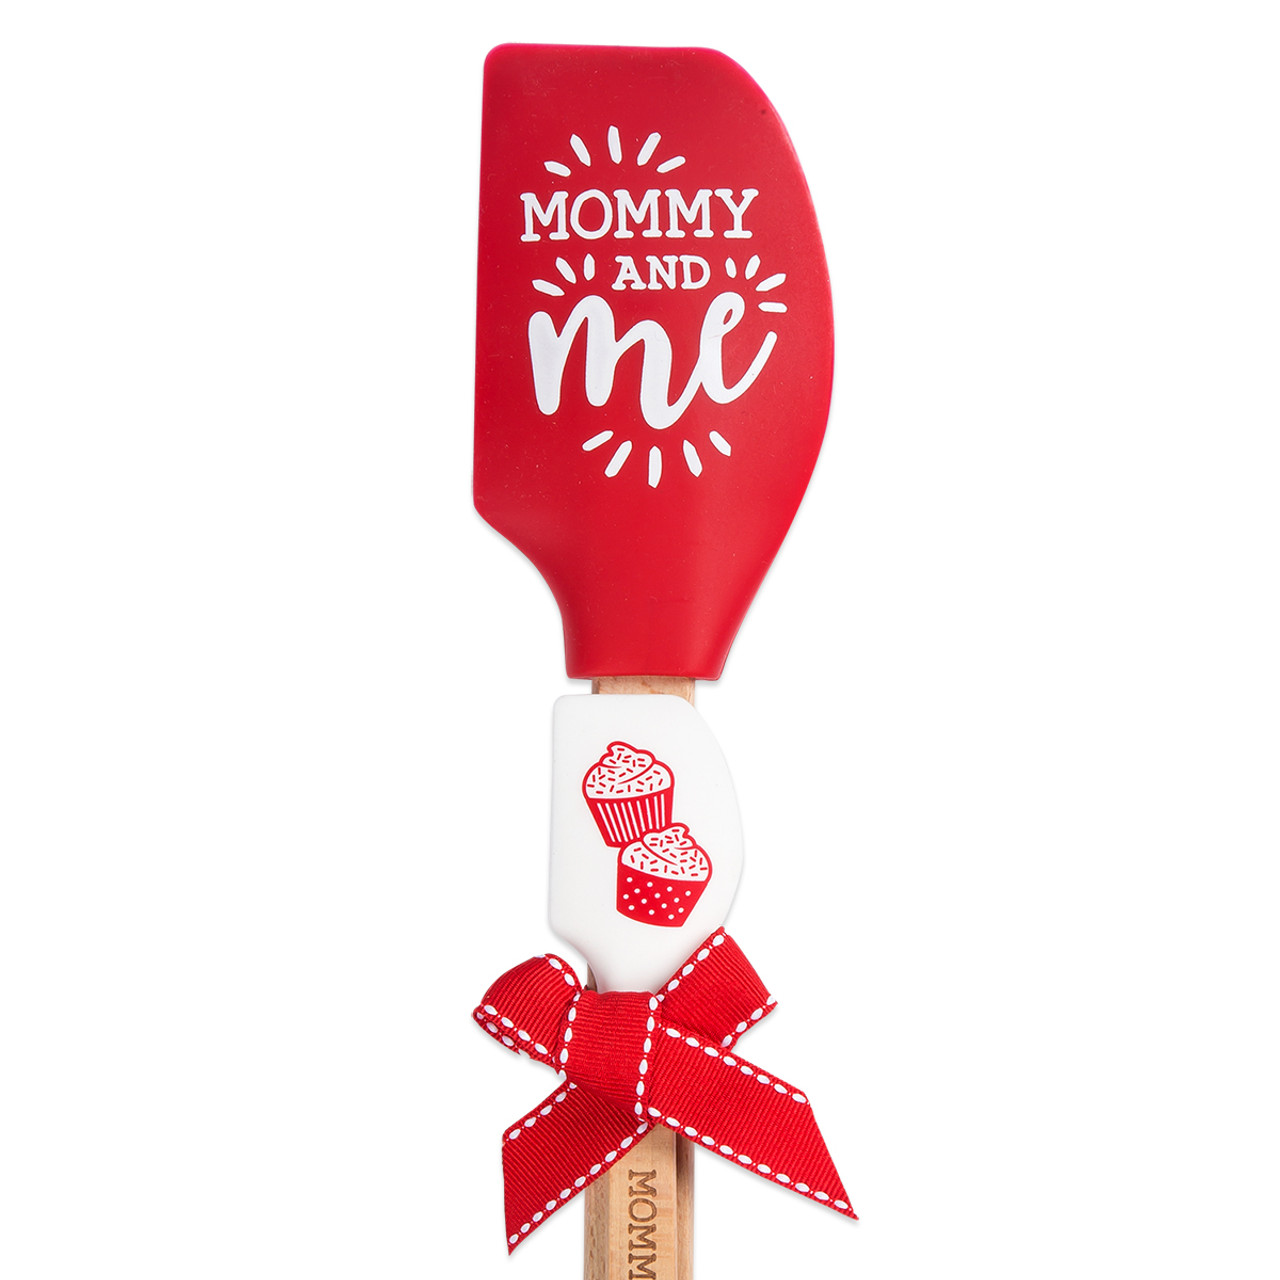 mommy and me kitchen buddies double spatula